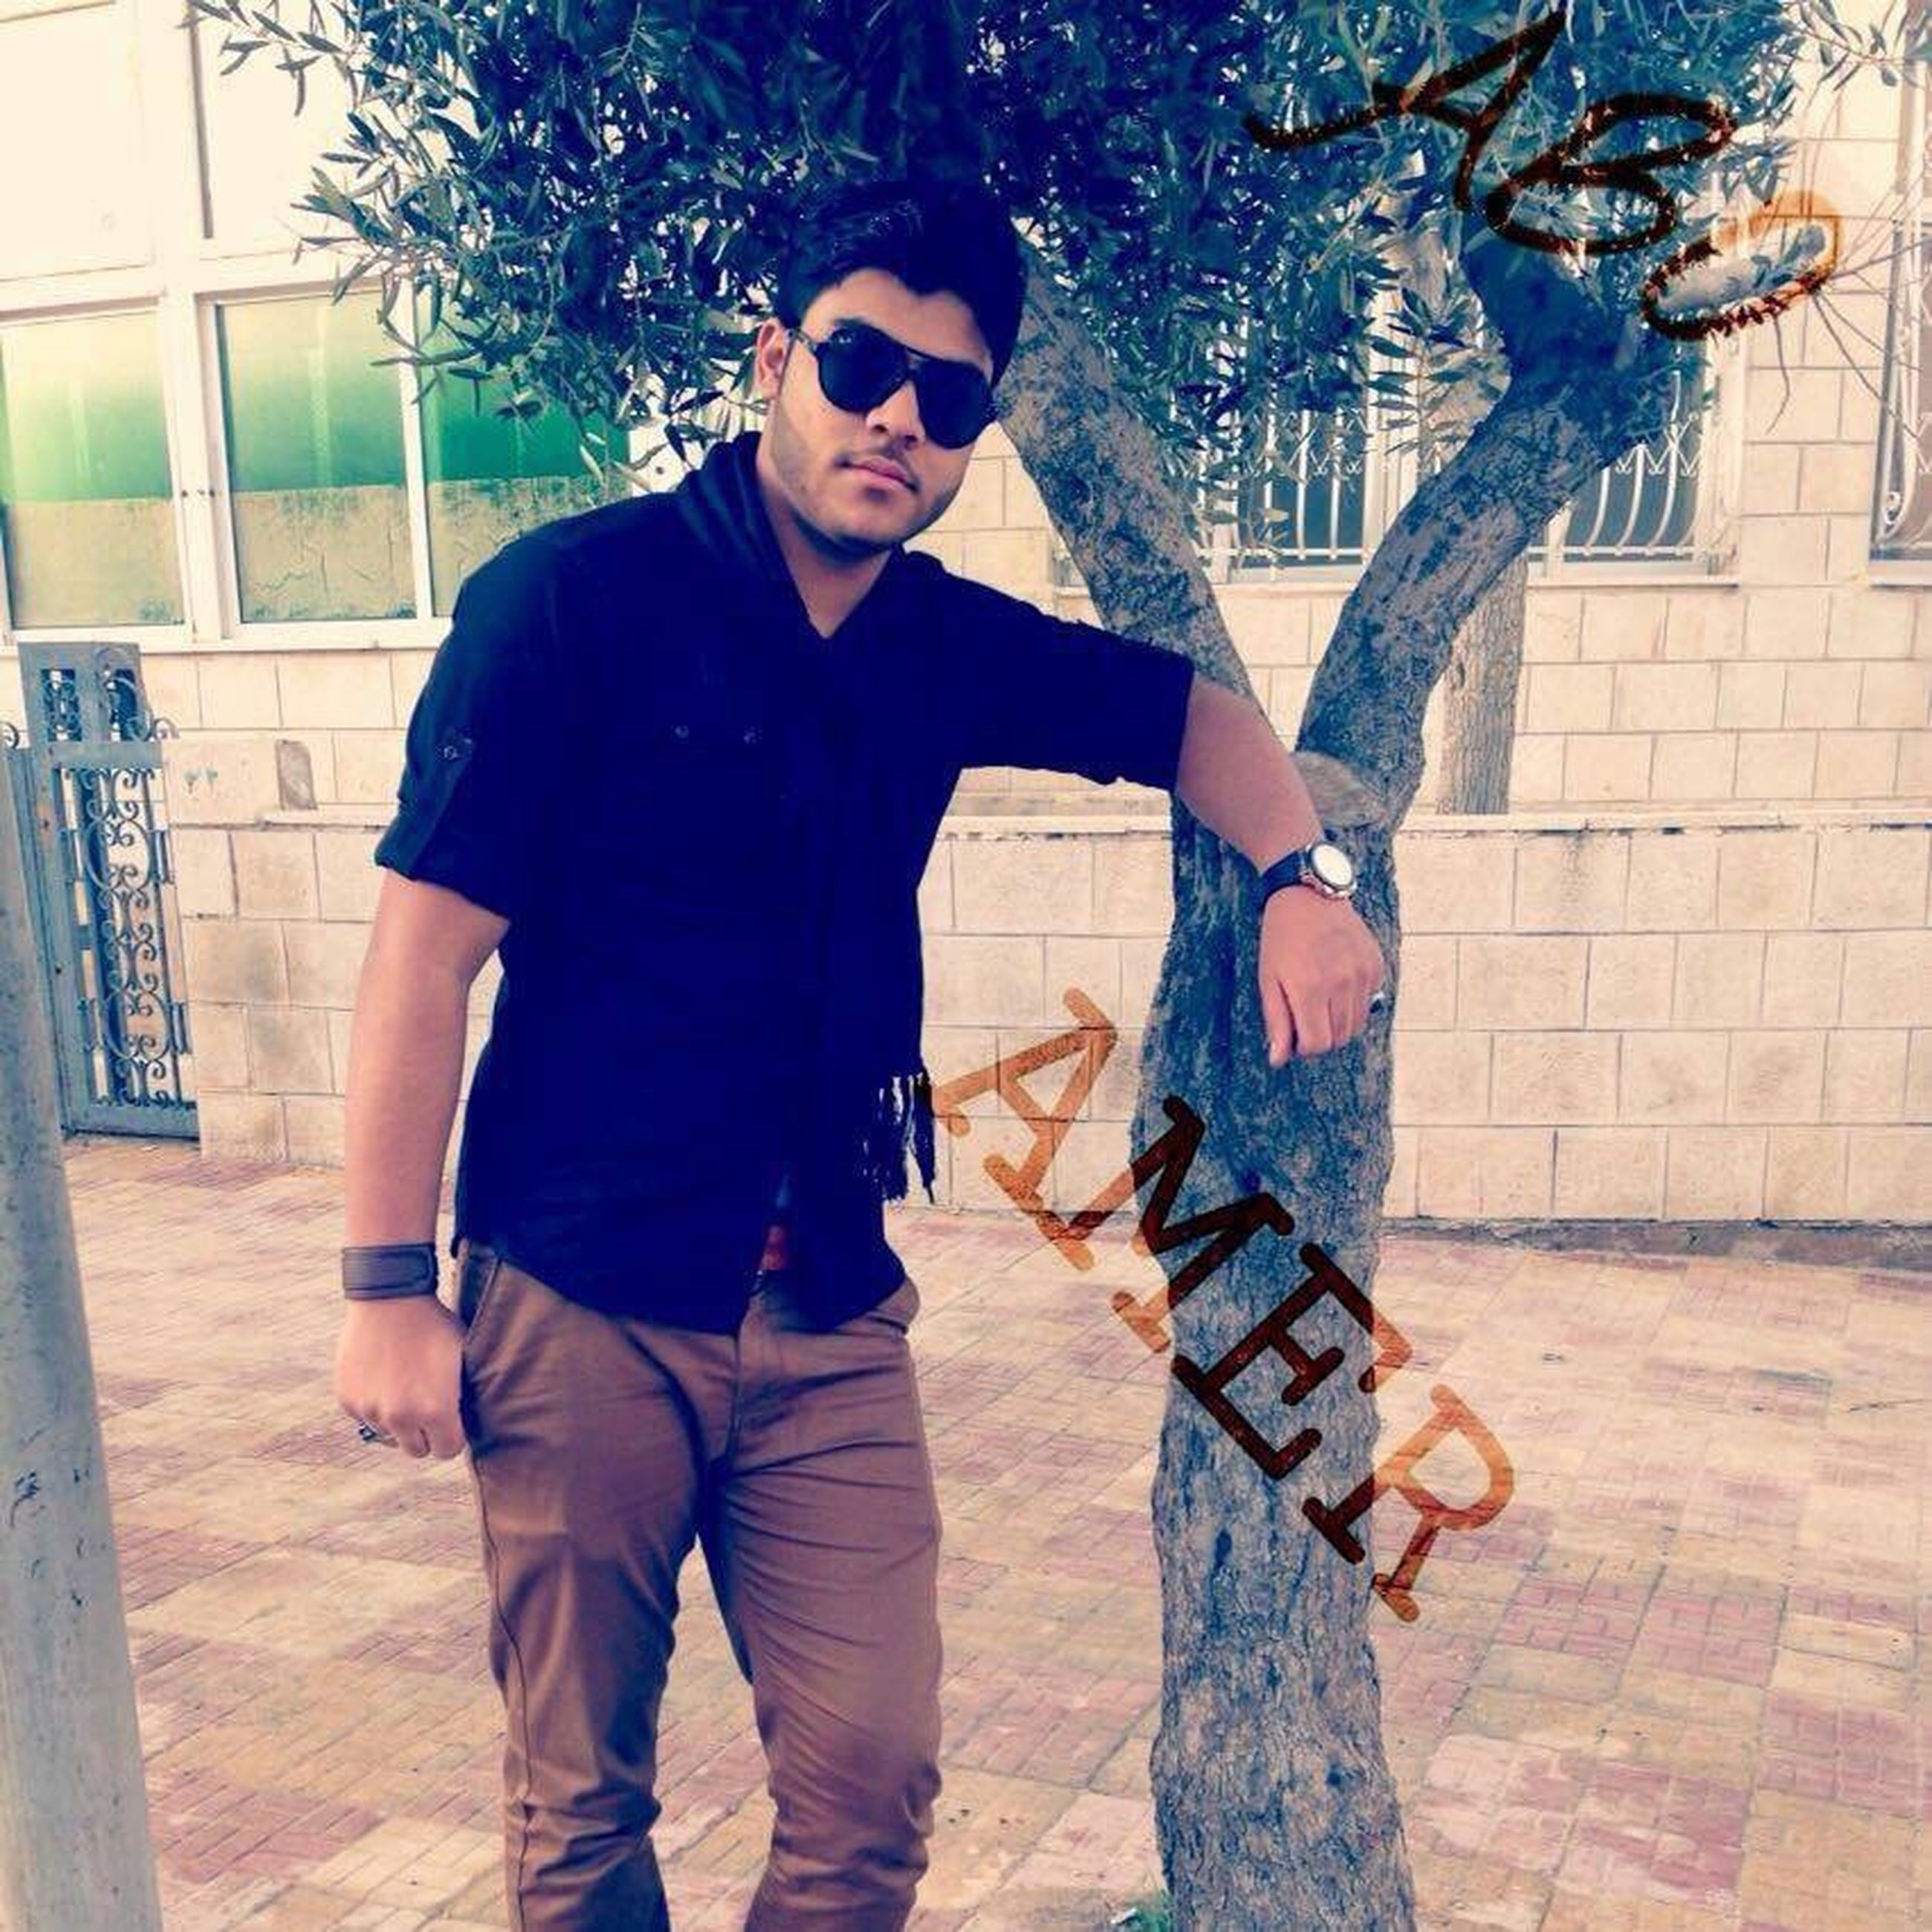 young adult, lifestyles, casual clothing, front view, person, looking at camera, standing, portrait, young men, leisure activity, three quarter length, wall - building feature, building exterior, full length, sunglasses, hands in pockets, smiling